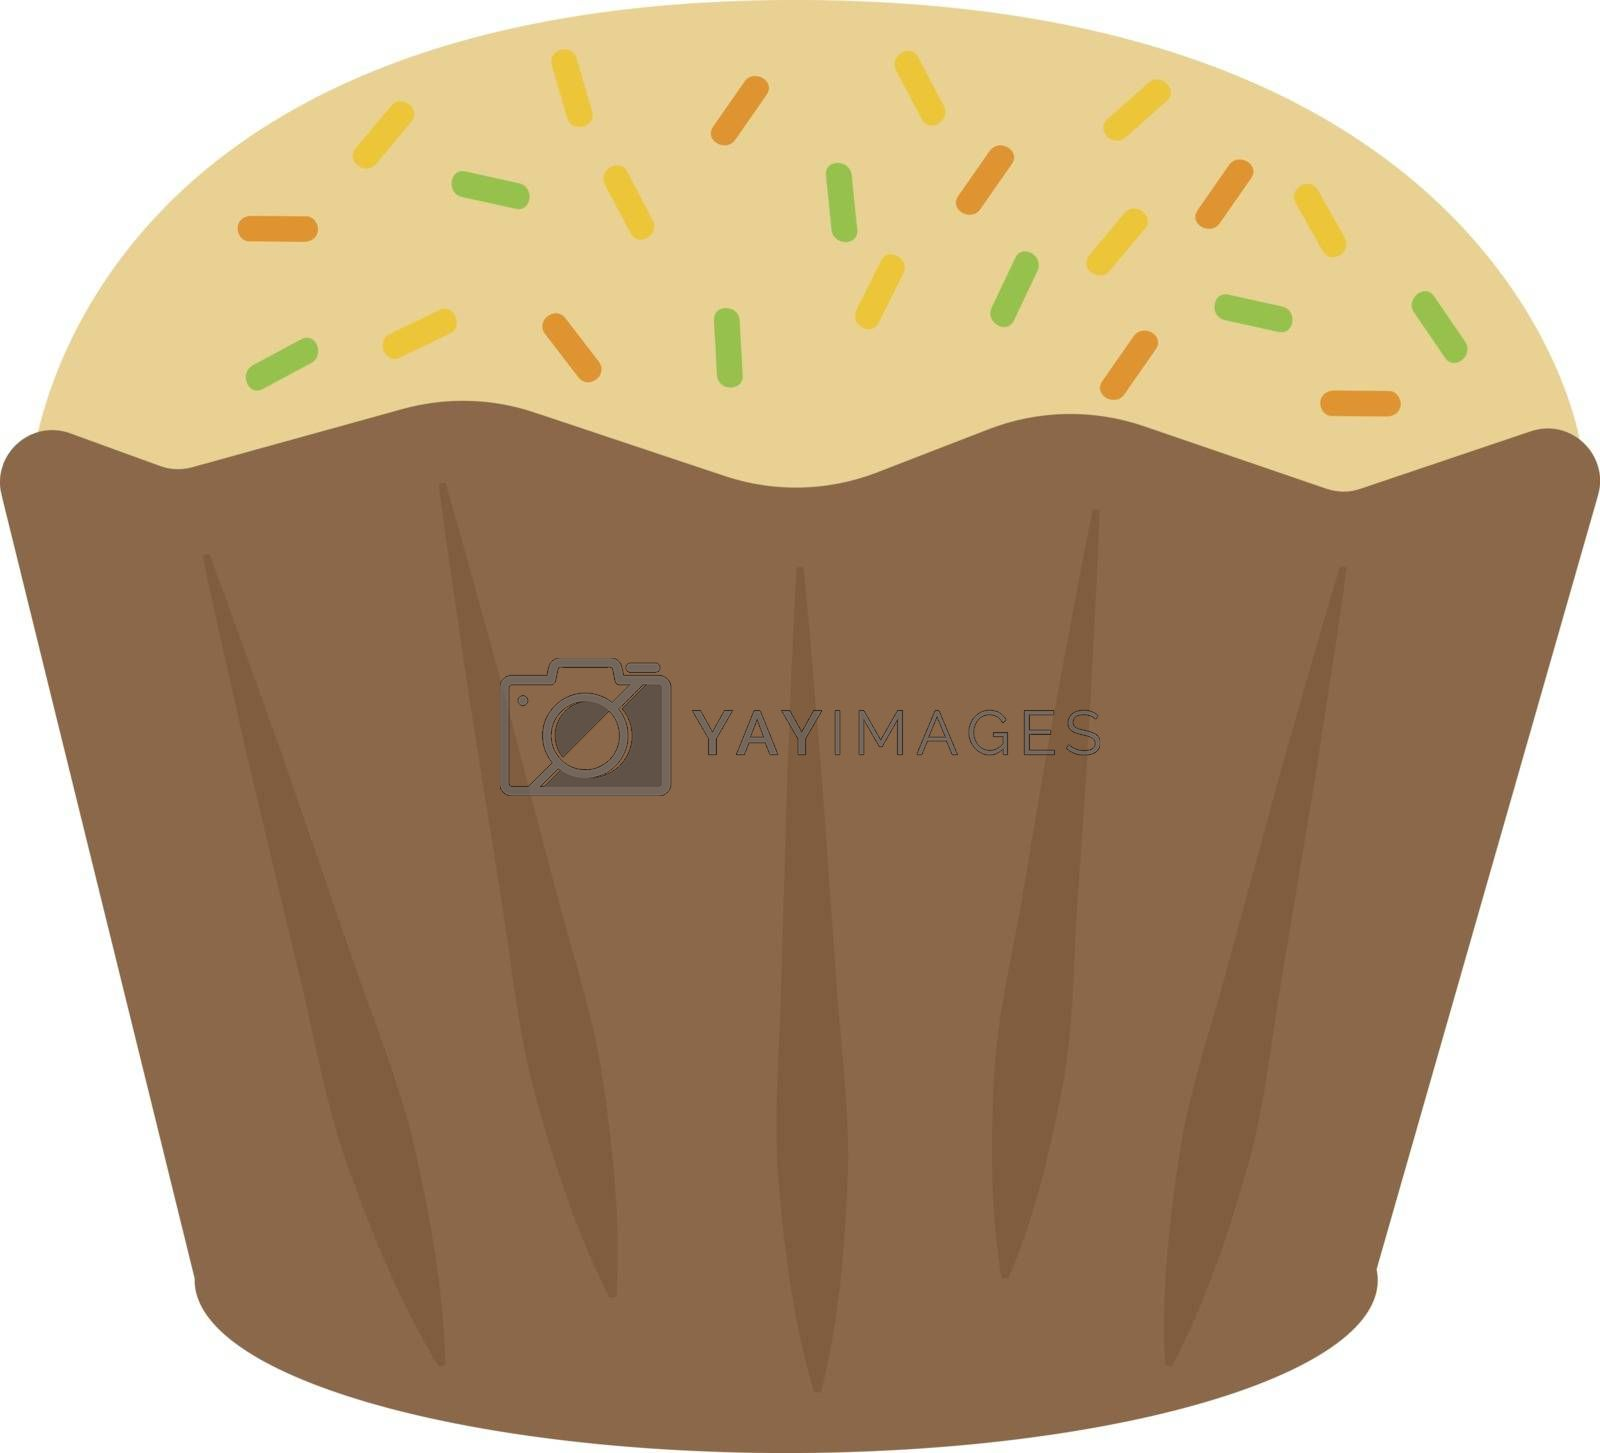 Yellow cupcake, illustration, vector on white background.